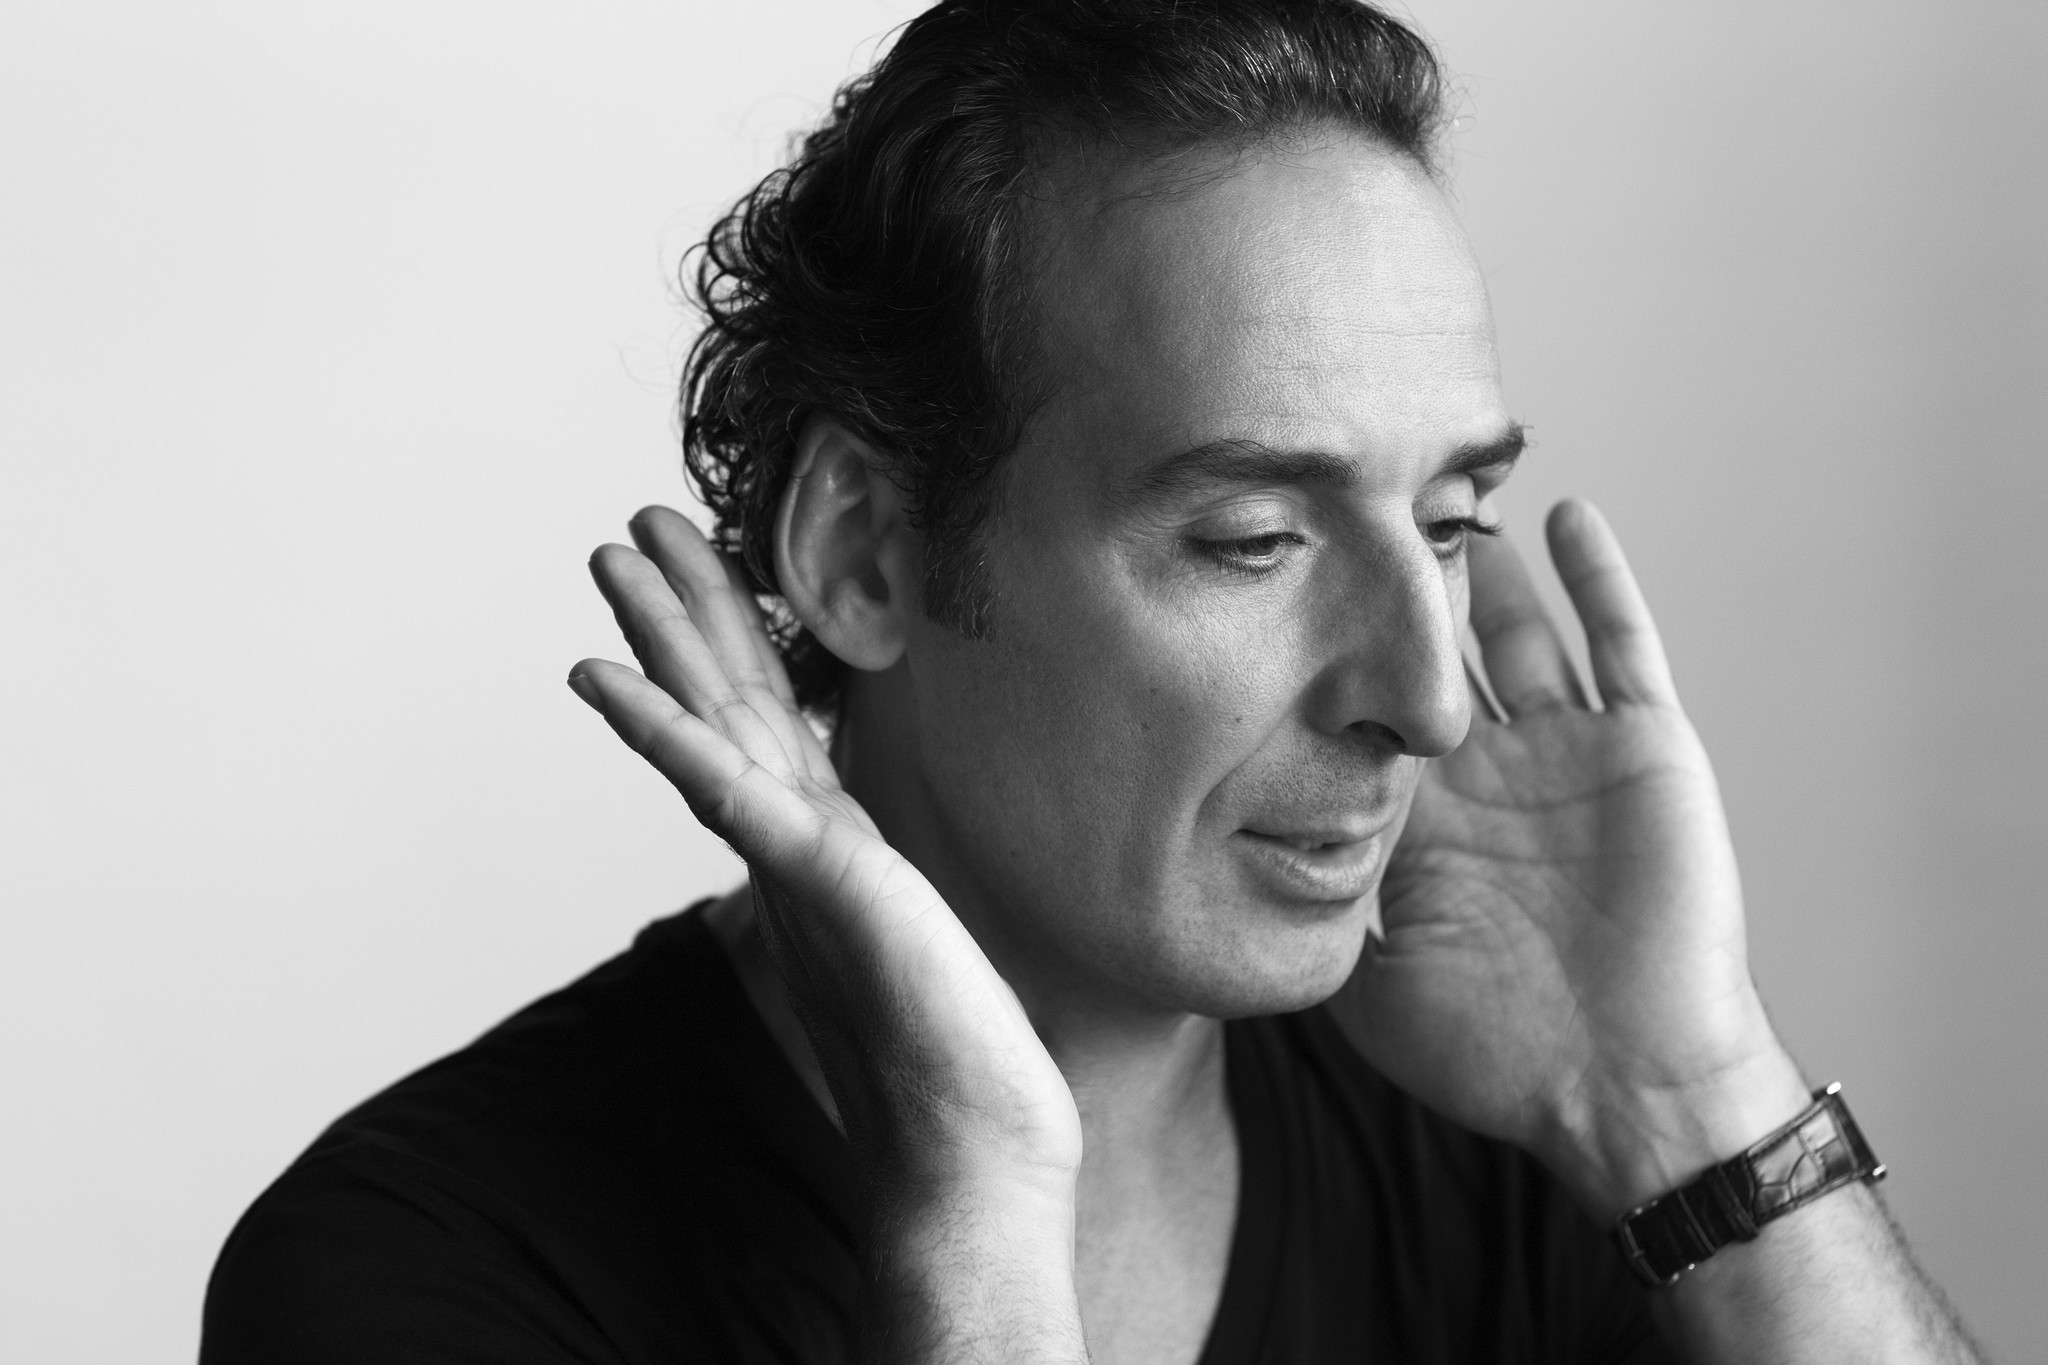 Oscar-winning film composer Alexandre Desplat writes his first opera, and it's personal